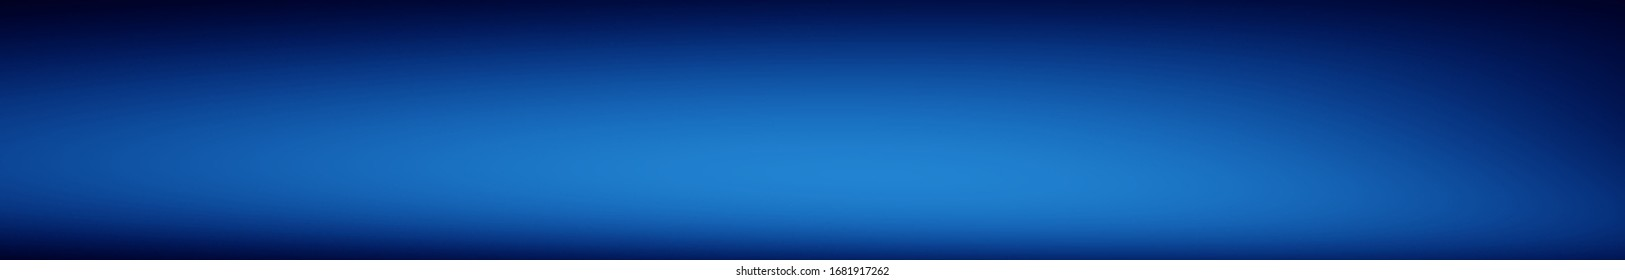 Background Navy Blue technology art horizontal widescreen header design